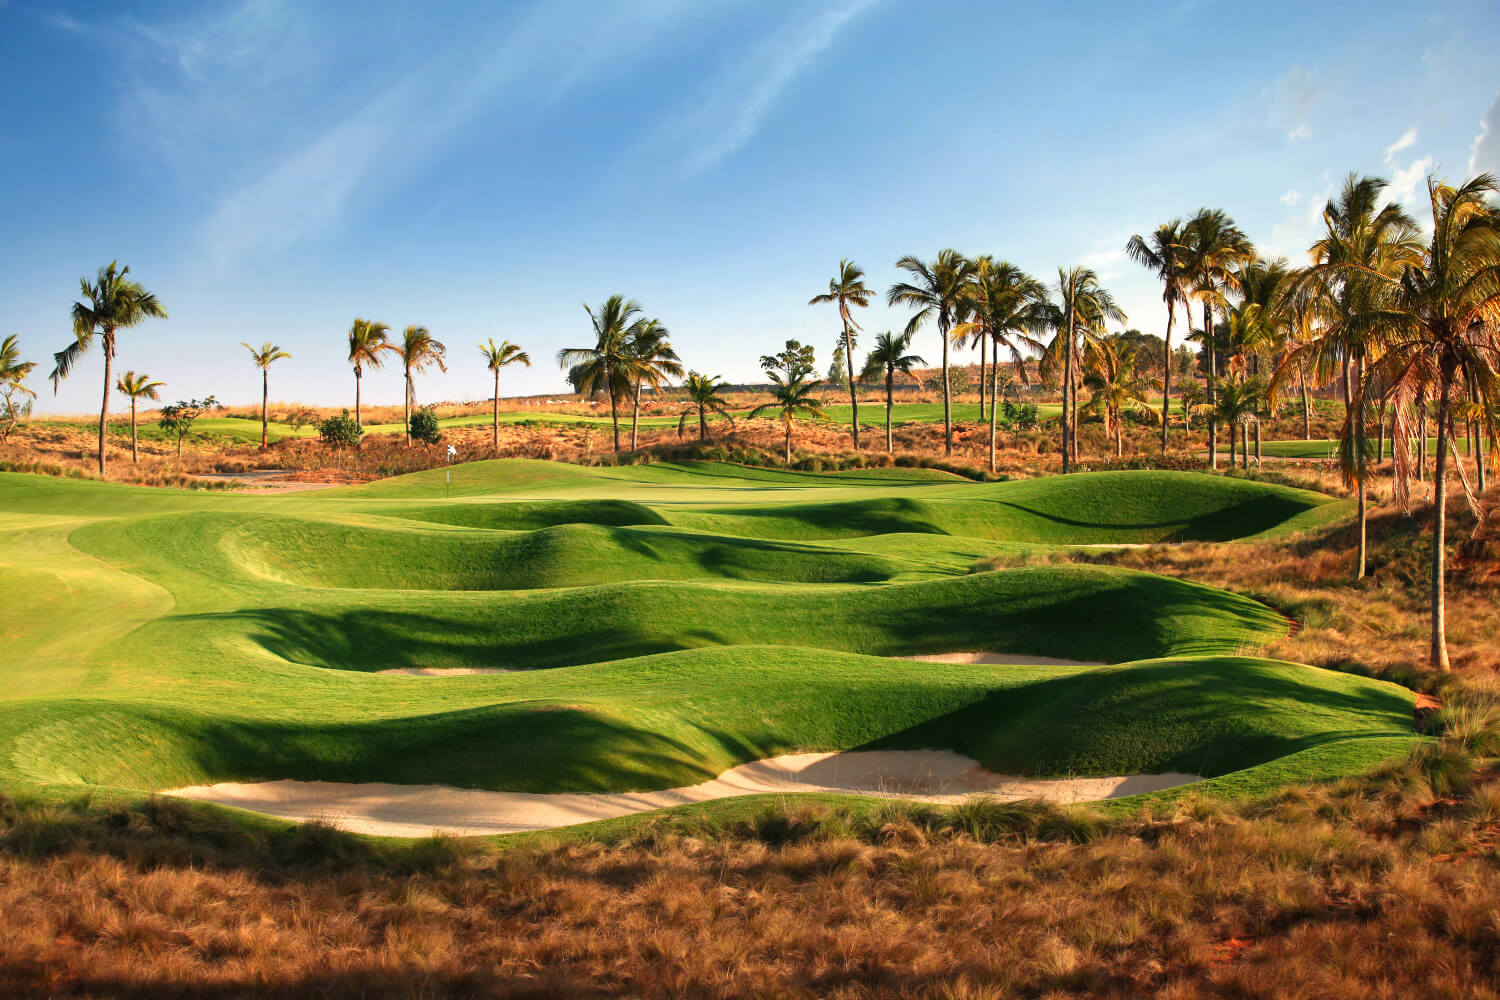 The 2018 Asian Development Tour is Coming to Prestige Golfshire Club